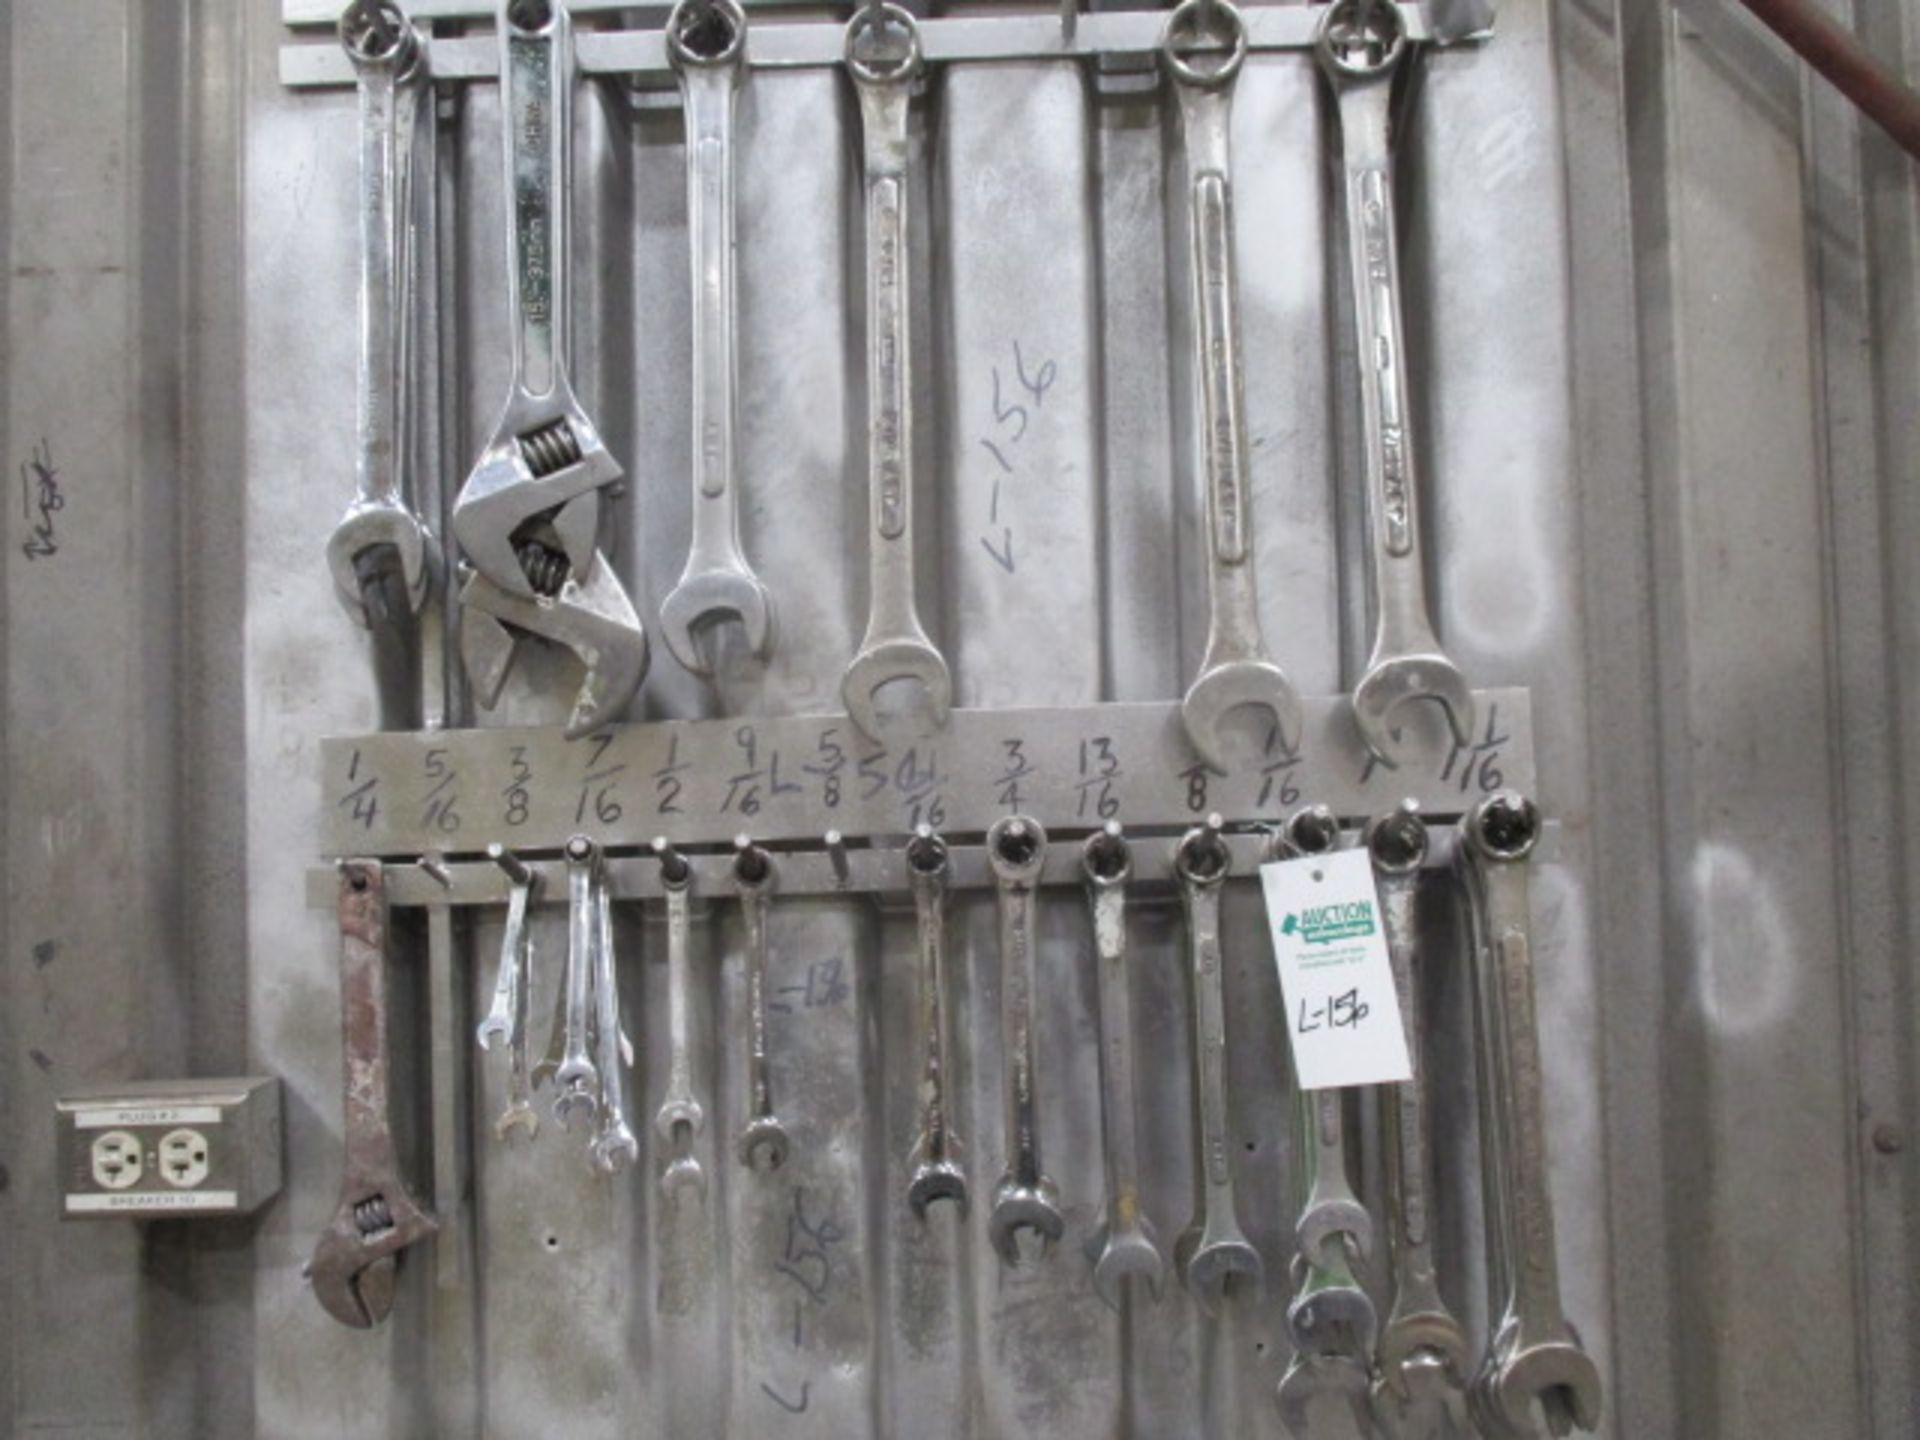 Lot 156 - Wall Lot of Various Size Wrenches aprox 52